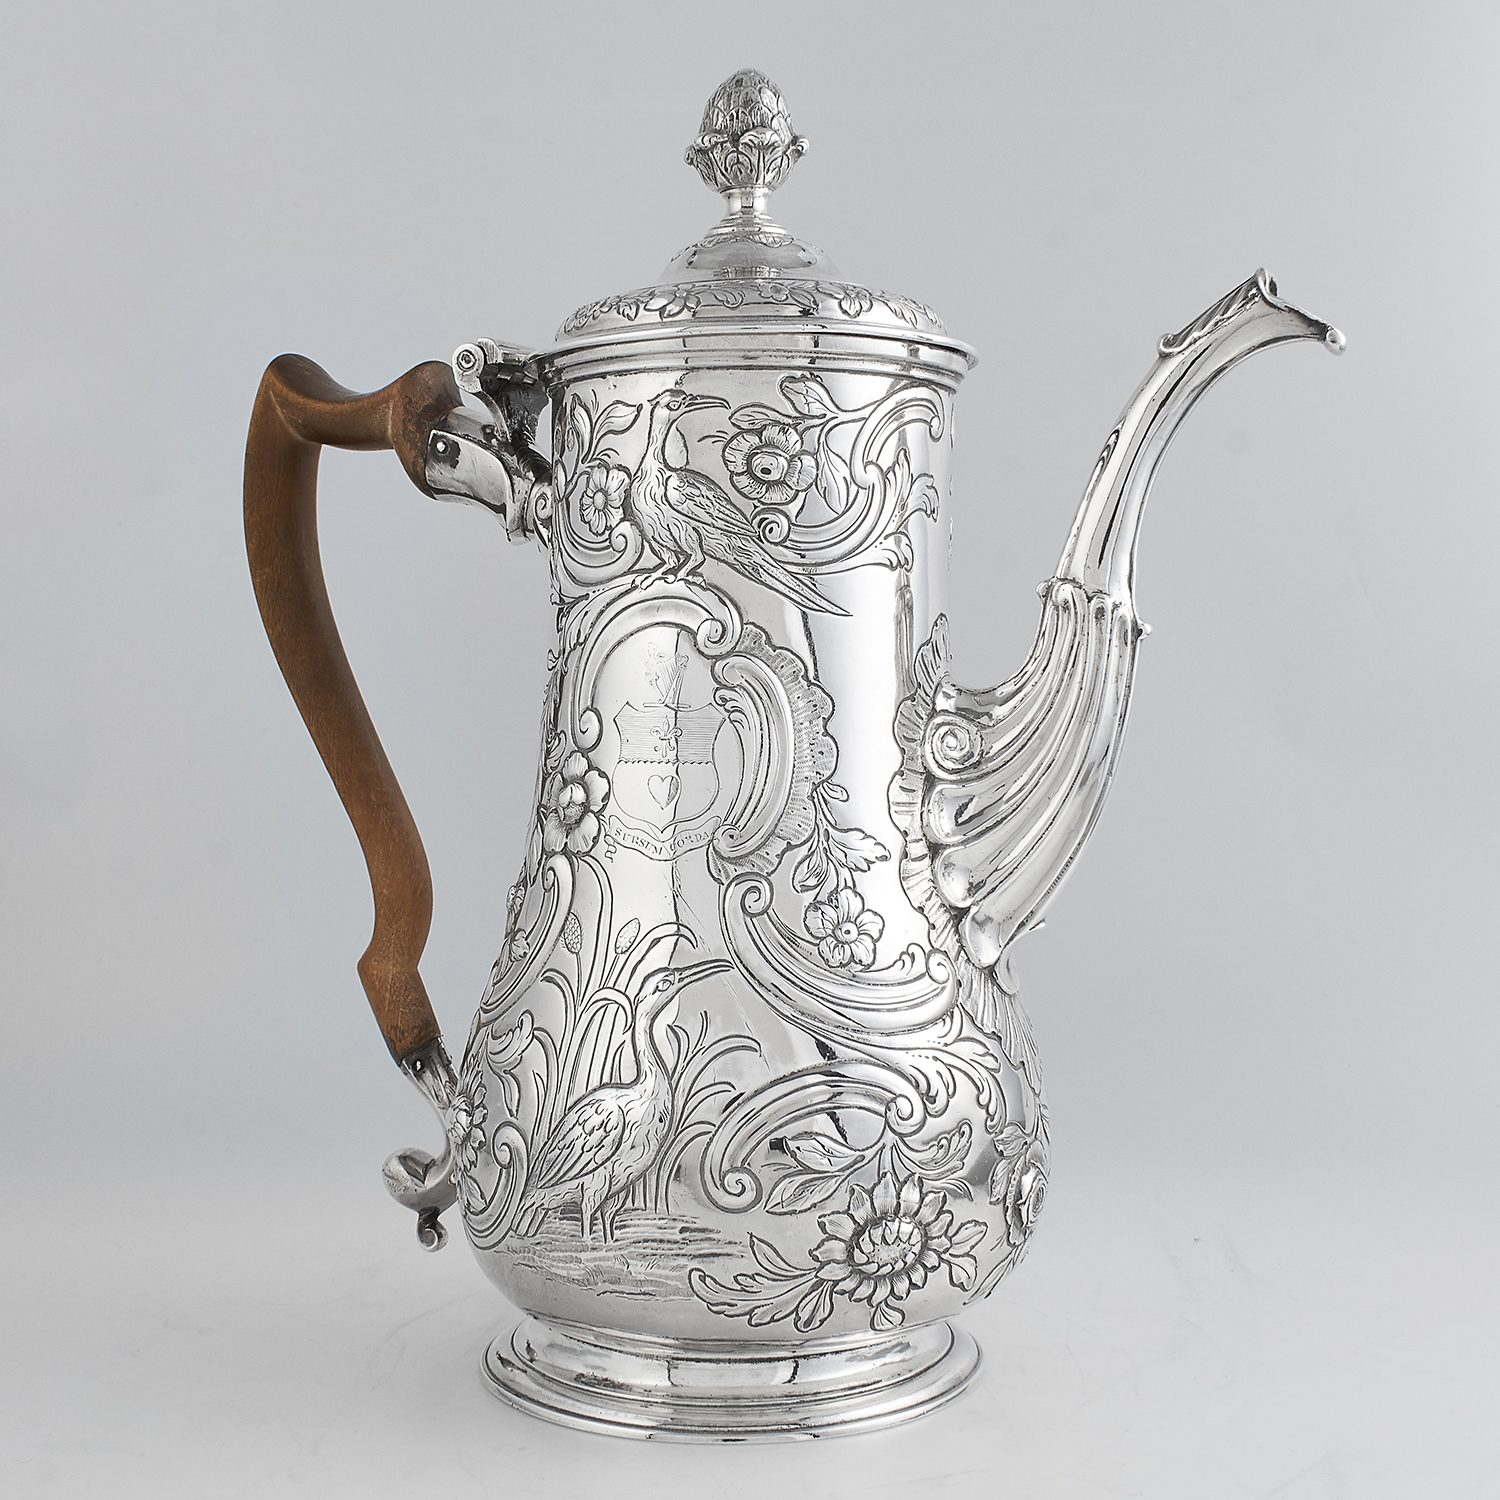 ANTIQUE GEORGE II IRISH STERLING SILVER COFFEE POT, DAVID BOWES CIRCA 1750 the baluster body on a